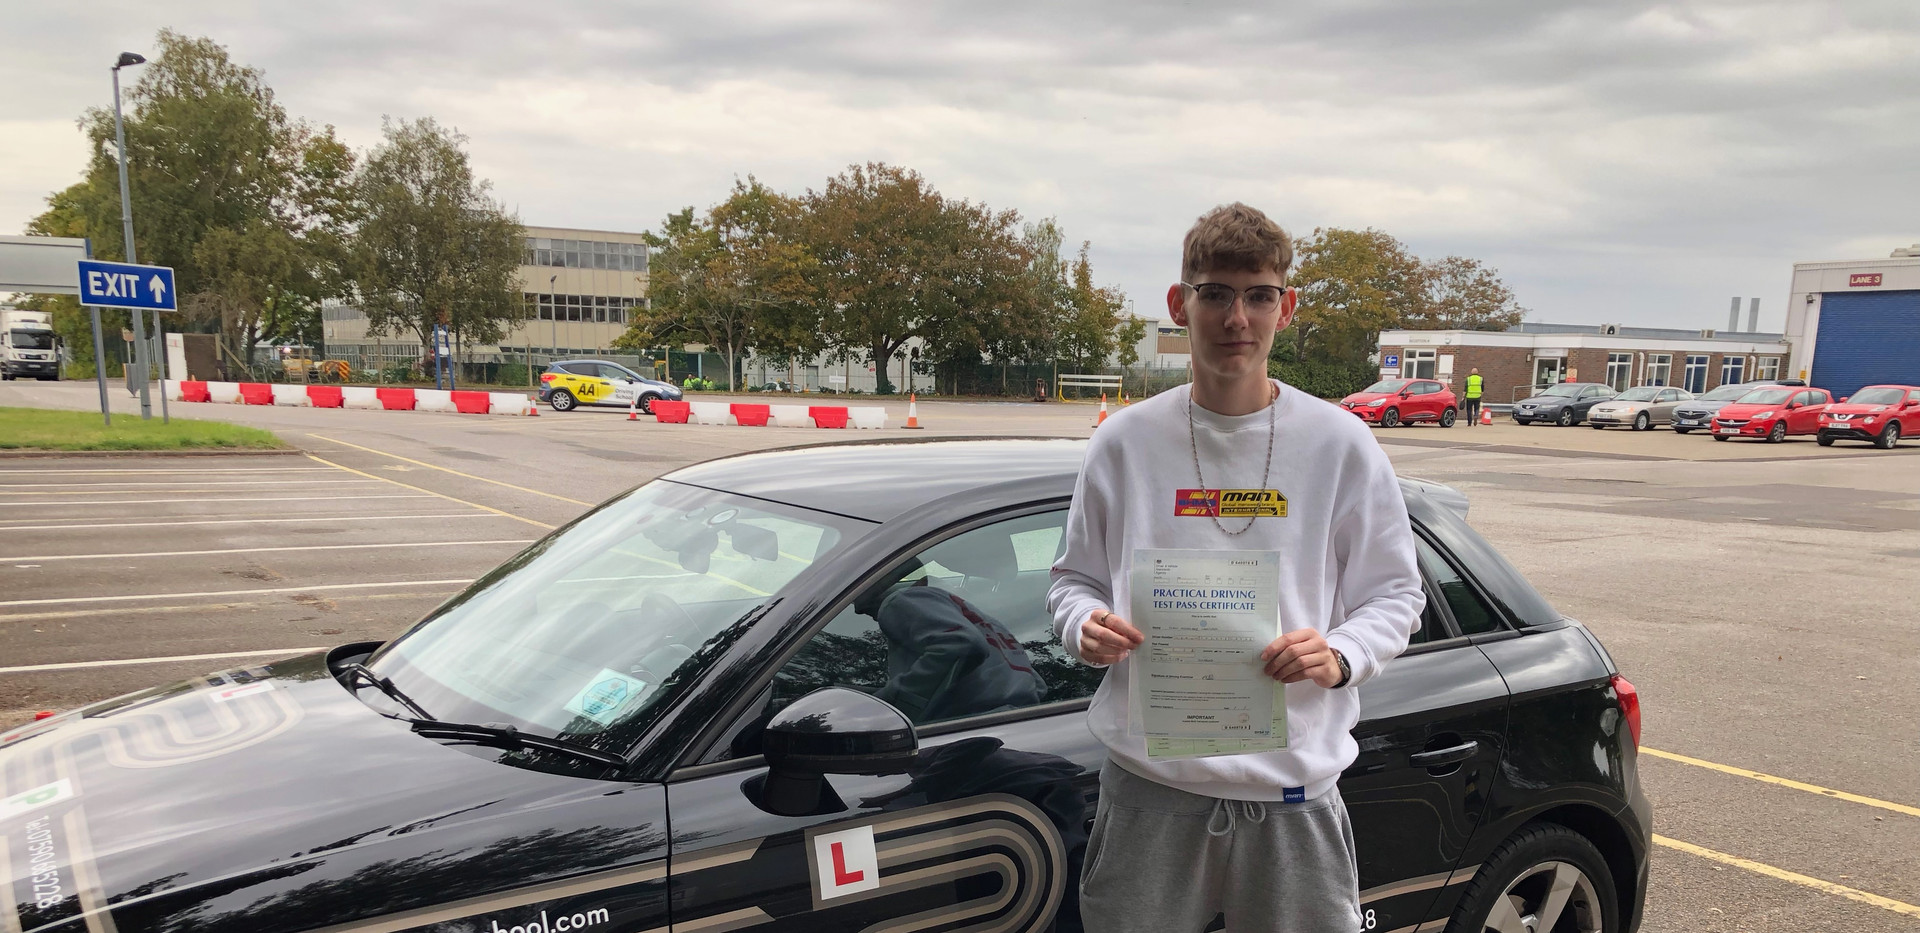 Owen passes at Guildford Test Centre